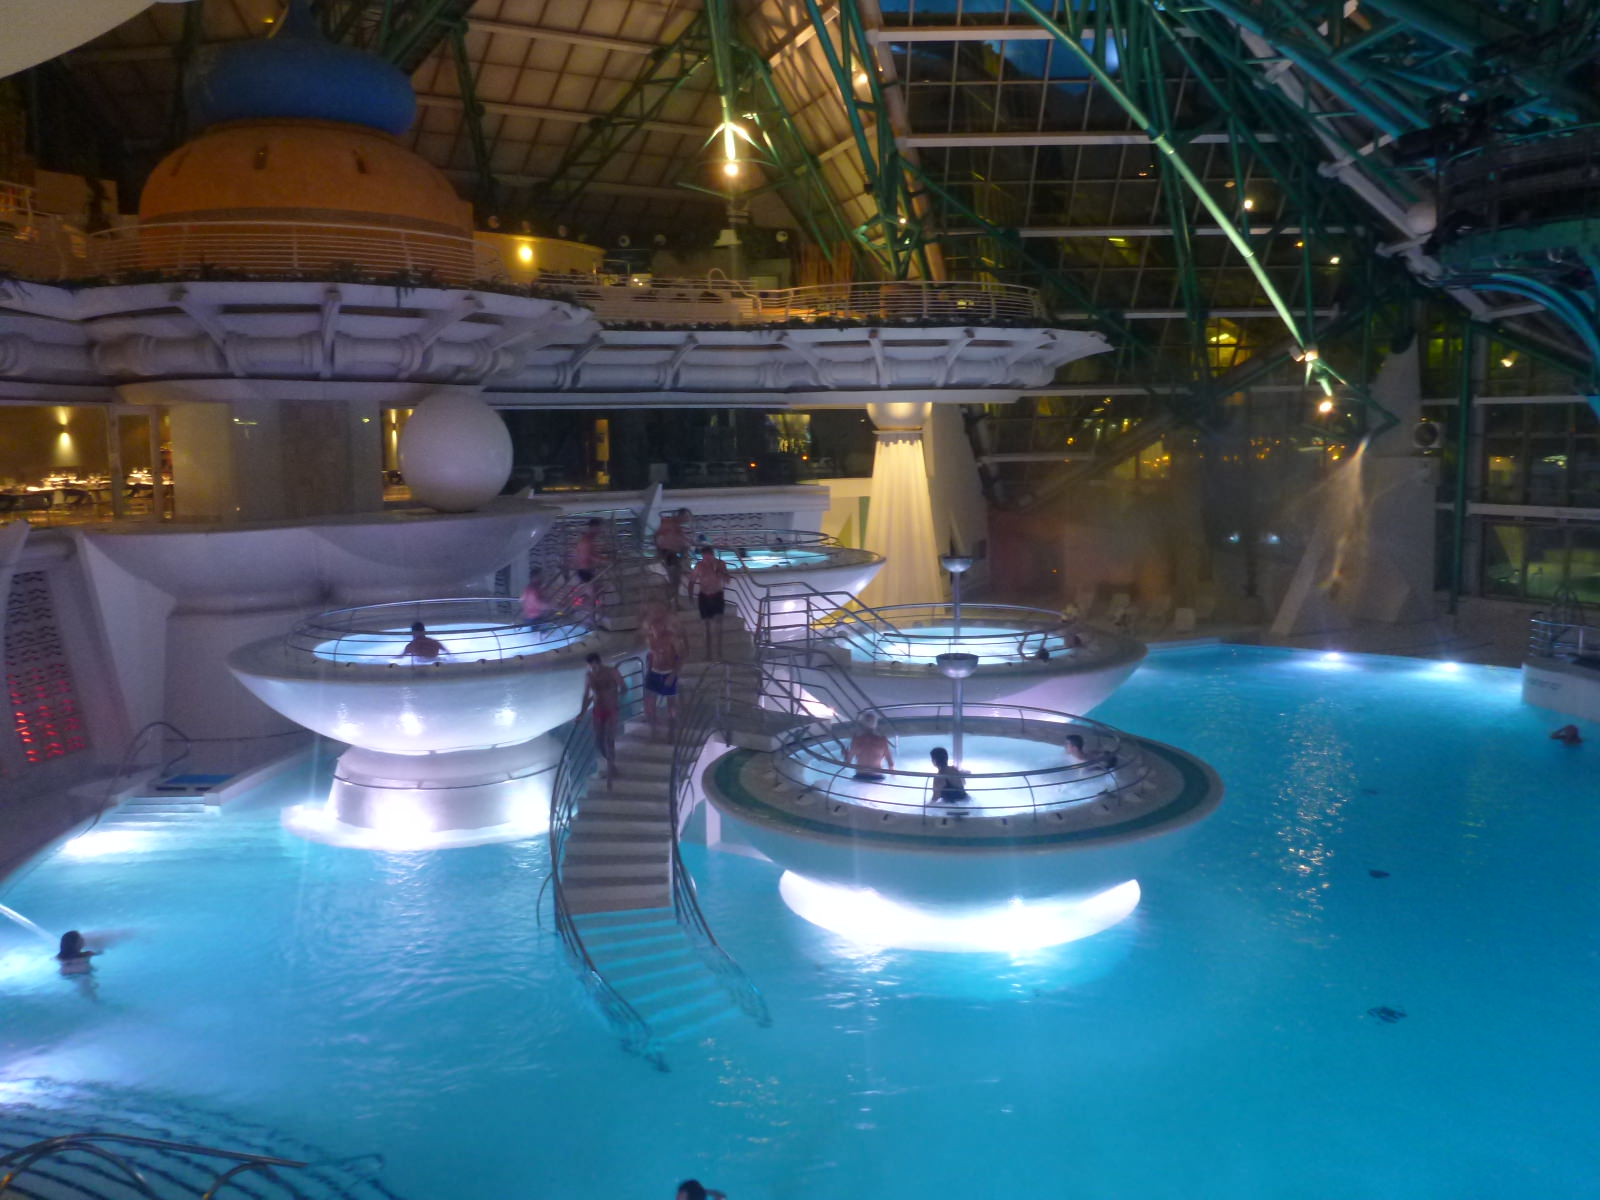 Spa In Swimming Pool: A Night Of Relaxation At Southern Europes Largest Spa